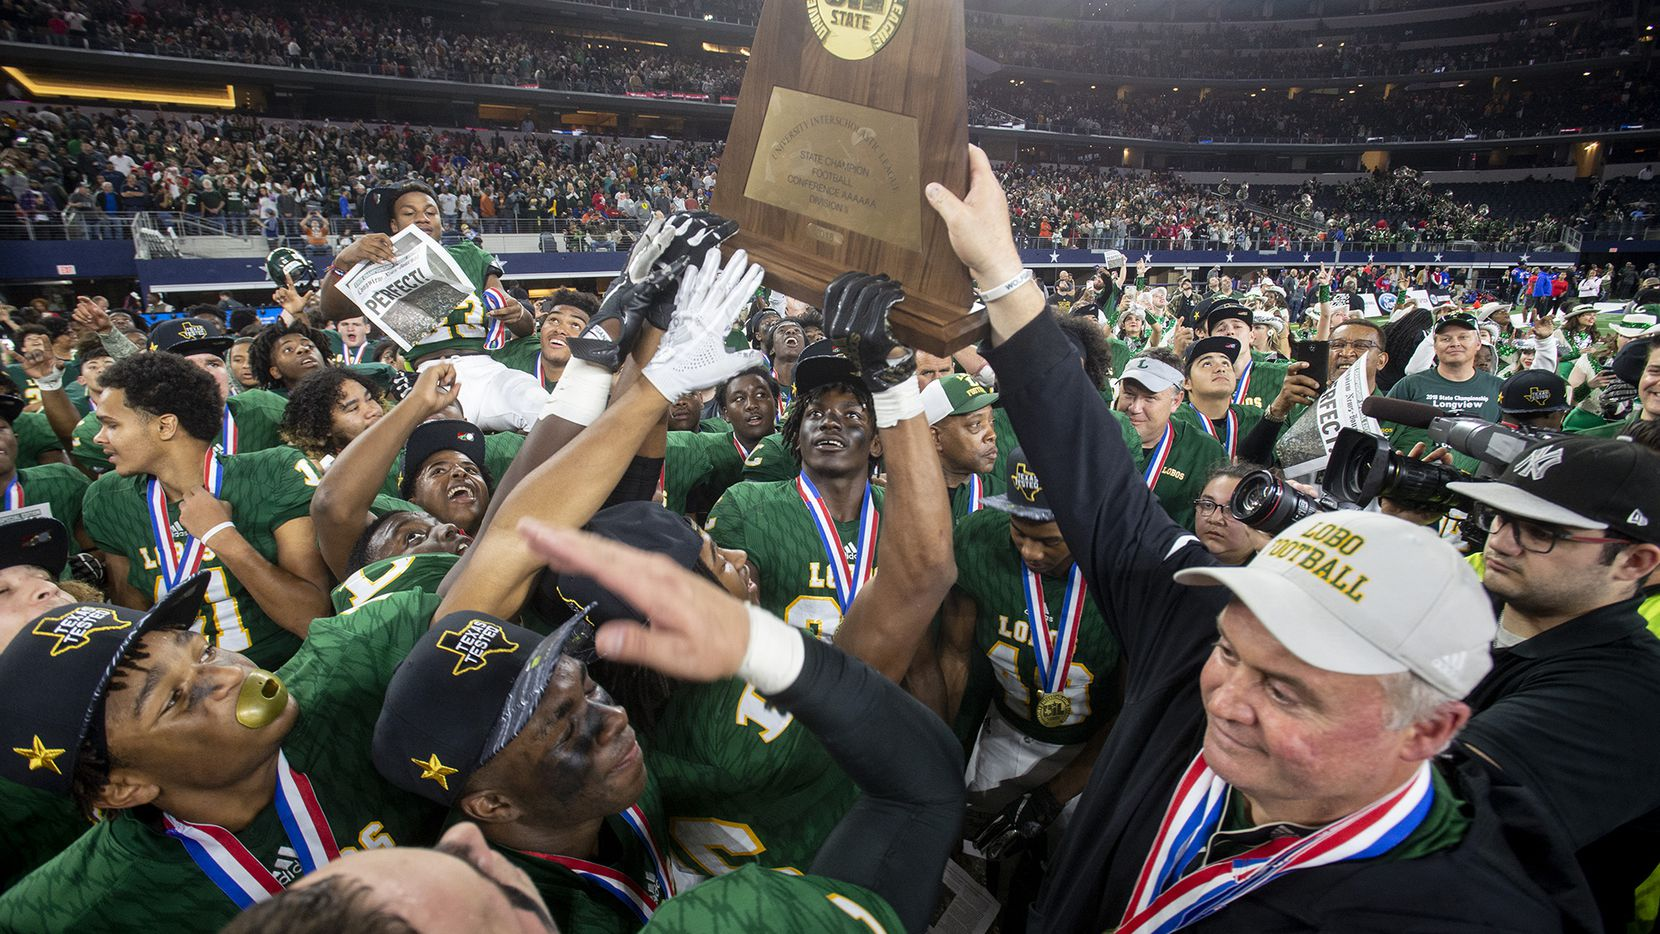 Longview won the 2018 Class 6A Division II state championship, it's first title since 1937. Head coach John King, right, helps his players hoist the trophy. (Michael Cavazos/Longview News-Journal)  The Longview Lobos celebrate their victory over Beaumont West Brook to win the Calss 6A Division II state championship game, on Saturday December 22, 2018, at AT&T Stadium in Arlington. (Michael Cavazos/ News-Journal Photo) ORG XMIT: TXLON101